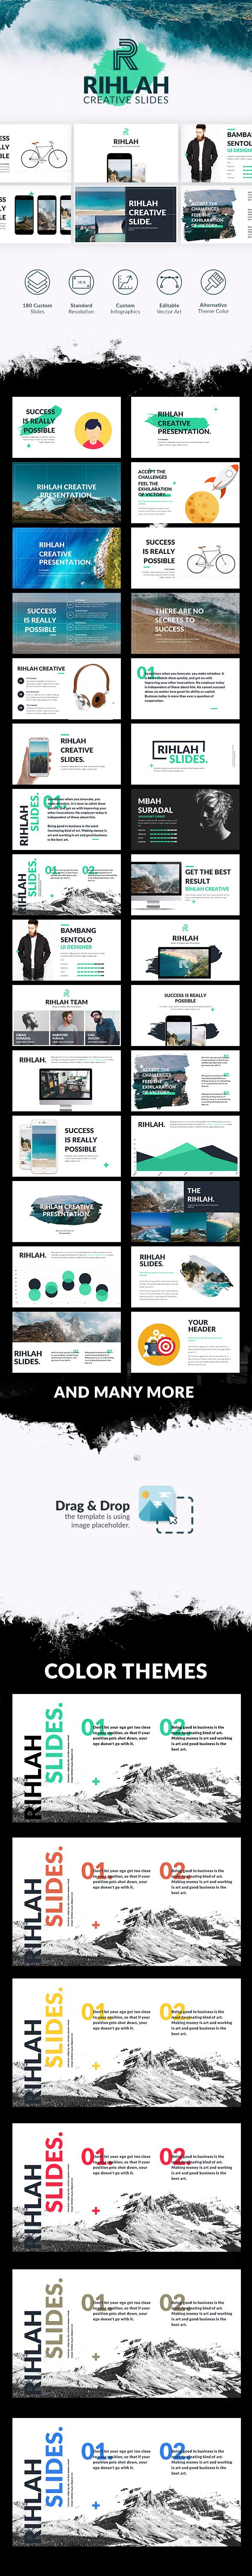 200 best powerpoint images on pinterest presentation design page buy rihlah creative powerpoint by atsar on graphicriver description rihlah presentation is a modern clean simple multipurpose powerpoint template to toneelgroepblik Choice Image